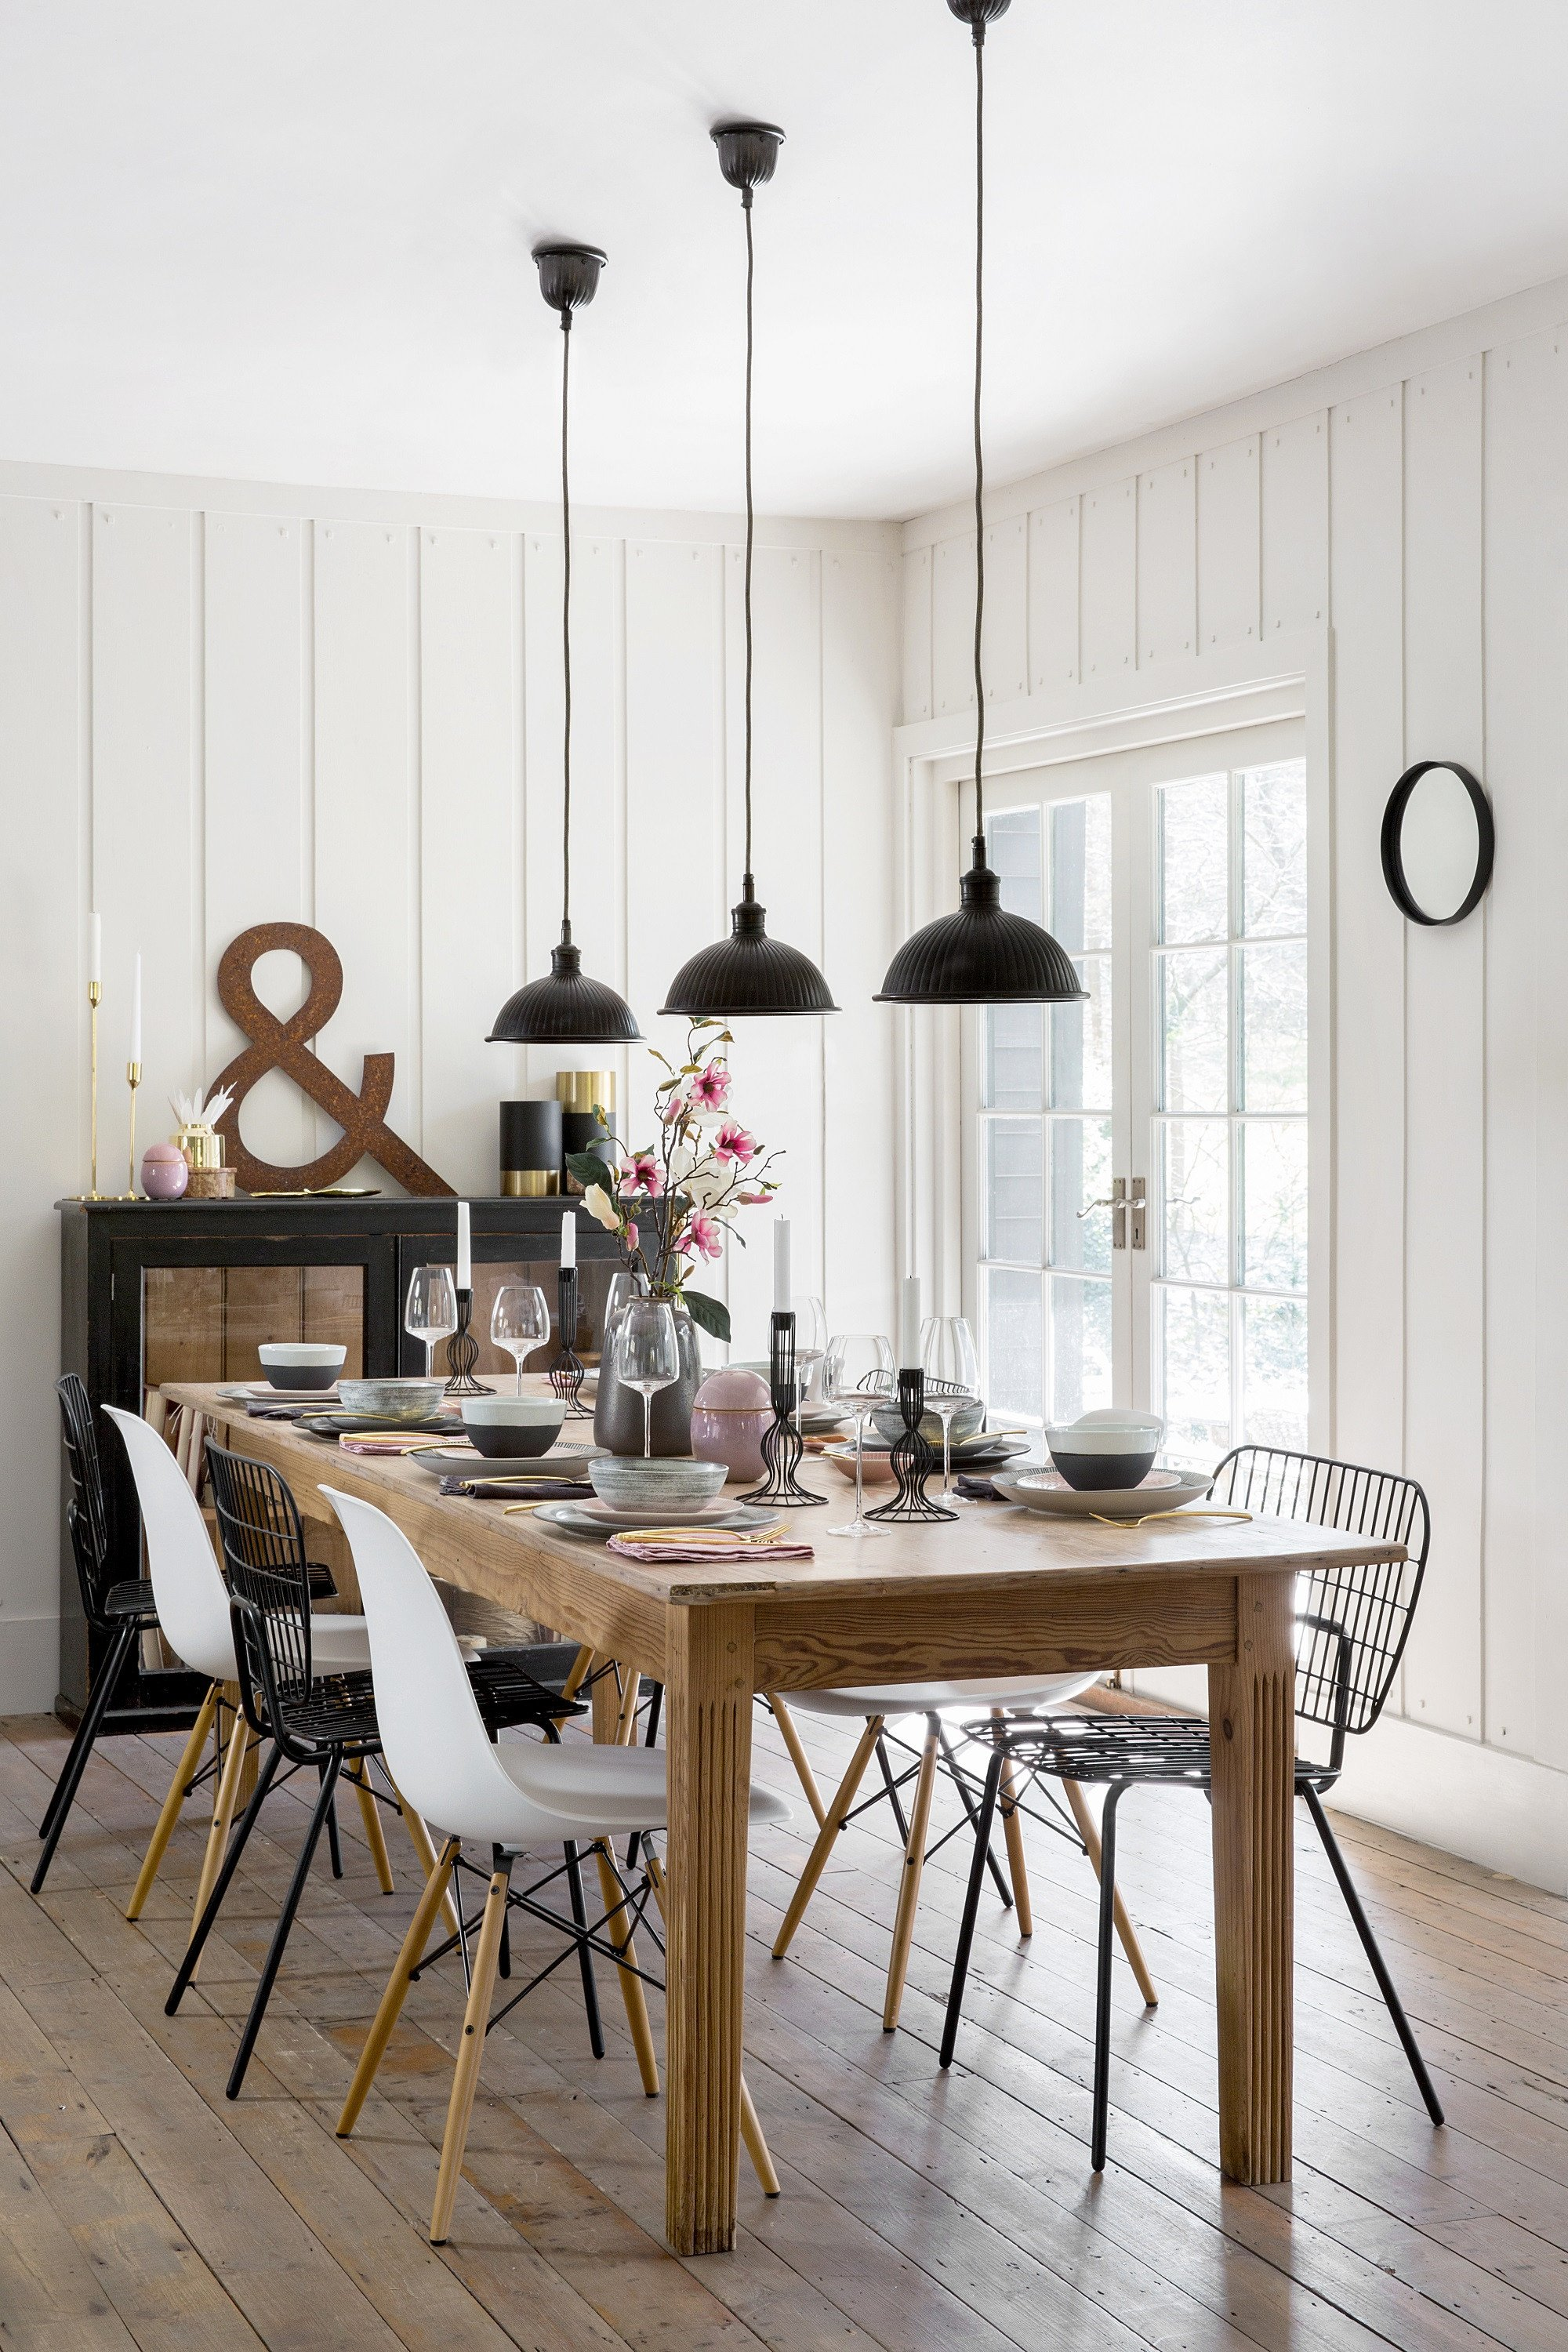 Dining Room Wall Decor Pictures Lovely 32 Stylish Dining Room Ideas to Impress Your Dinner Guests the Luxpad